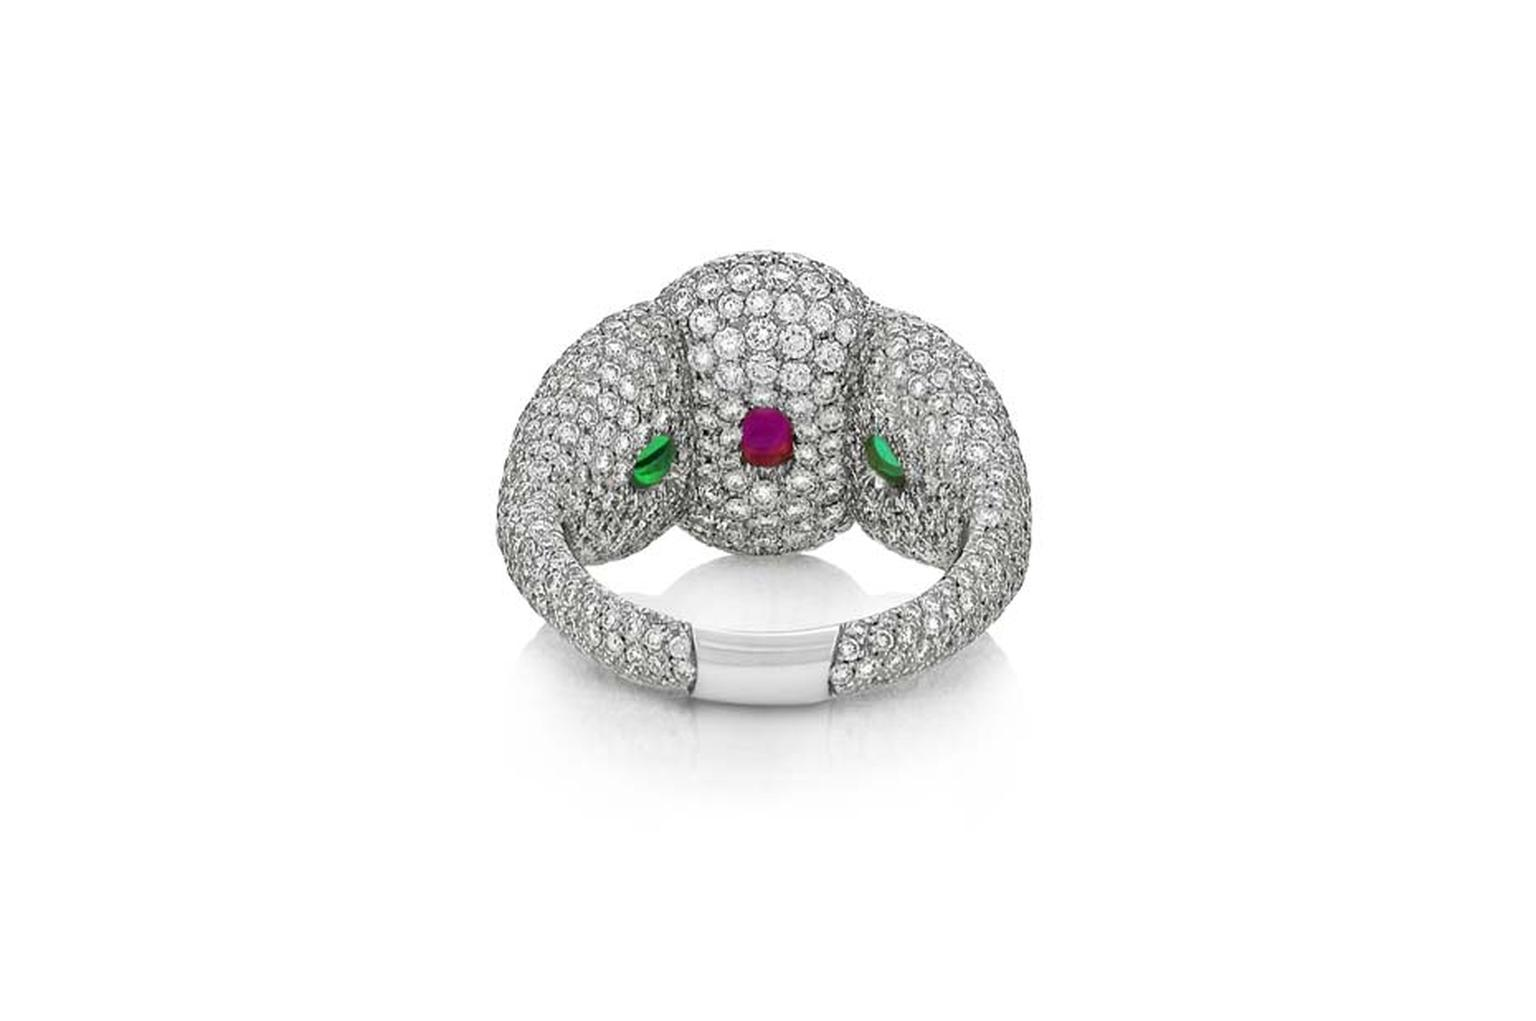 The African ruby and emeralds peep through when viewed from behind in Niquesa's Rose of the Desert ring.